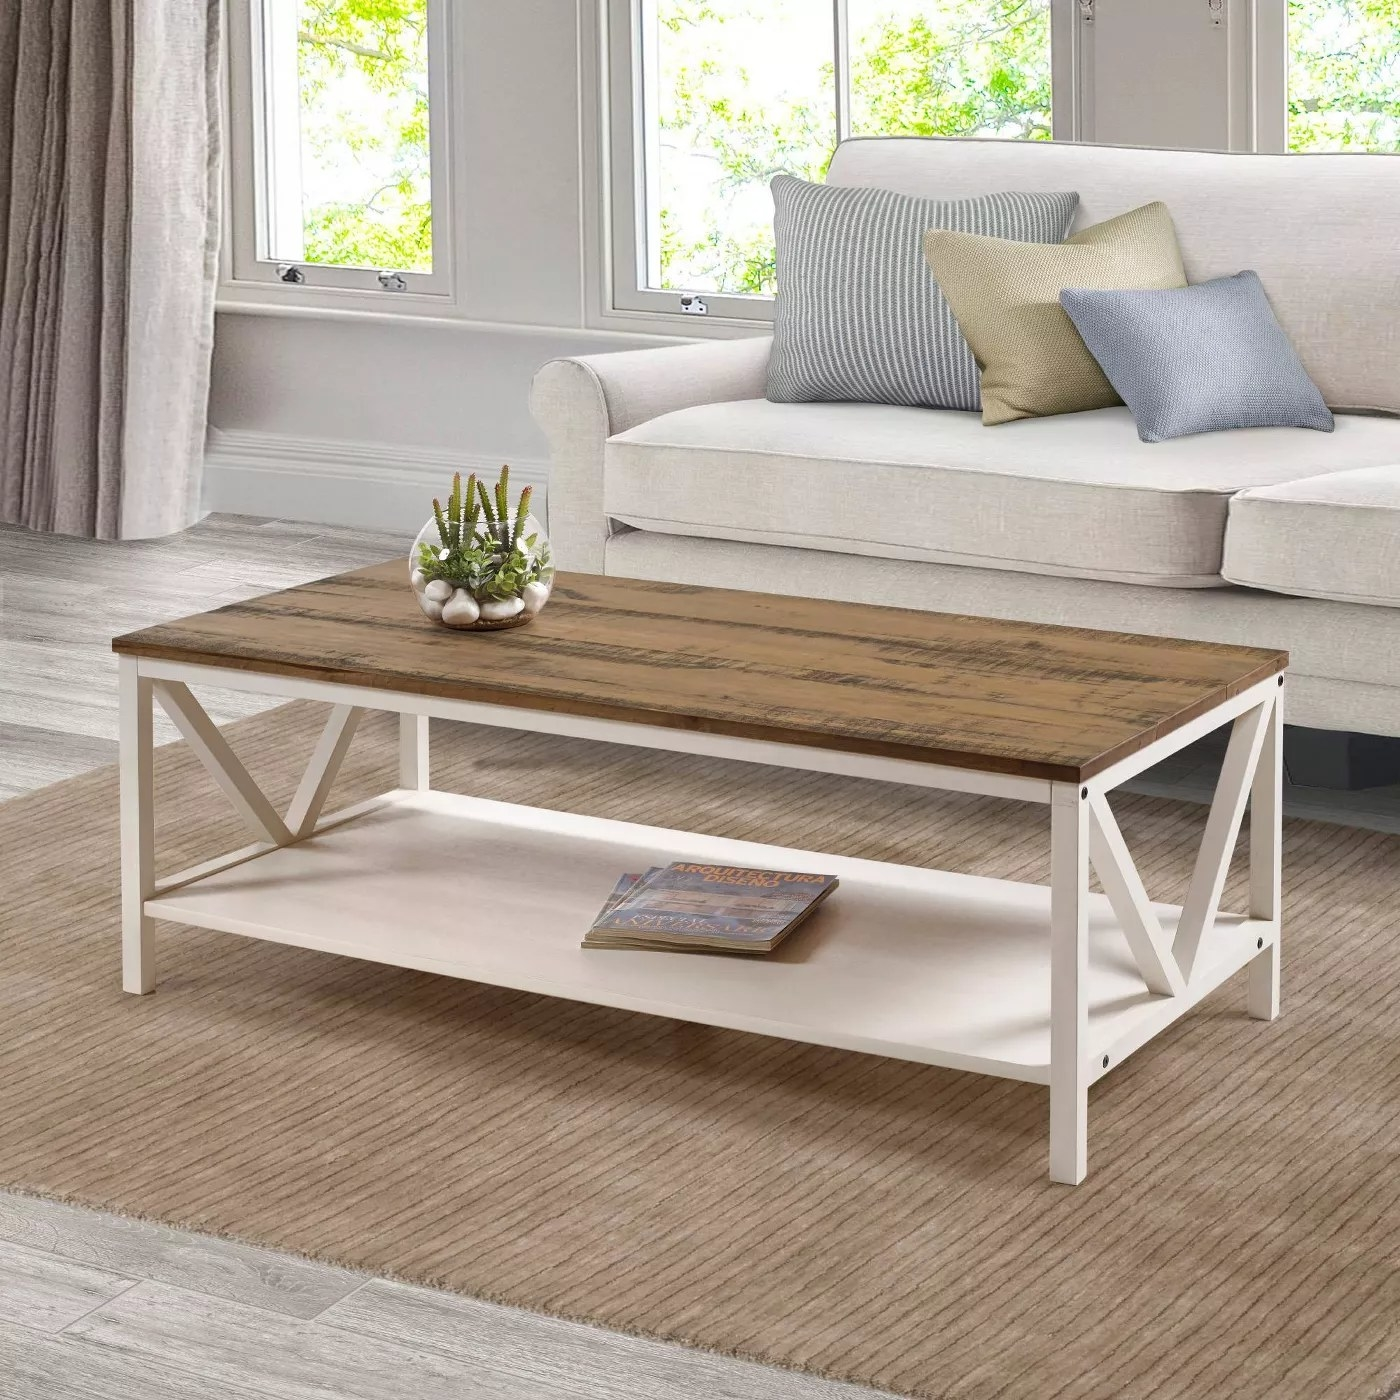 The barnwood and white coffee table